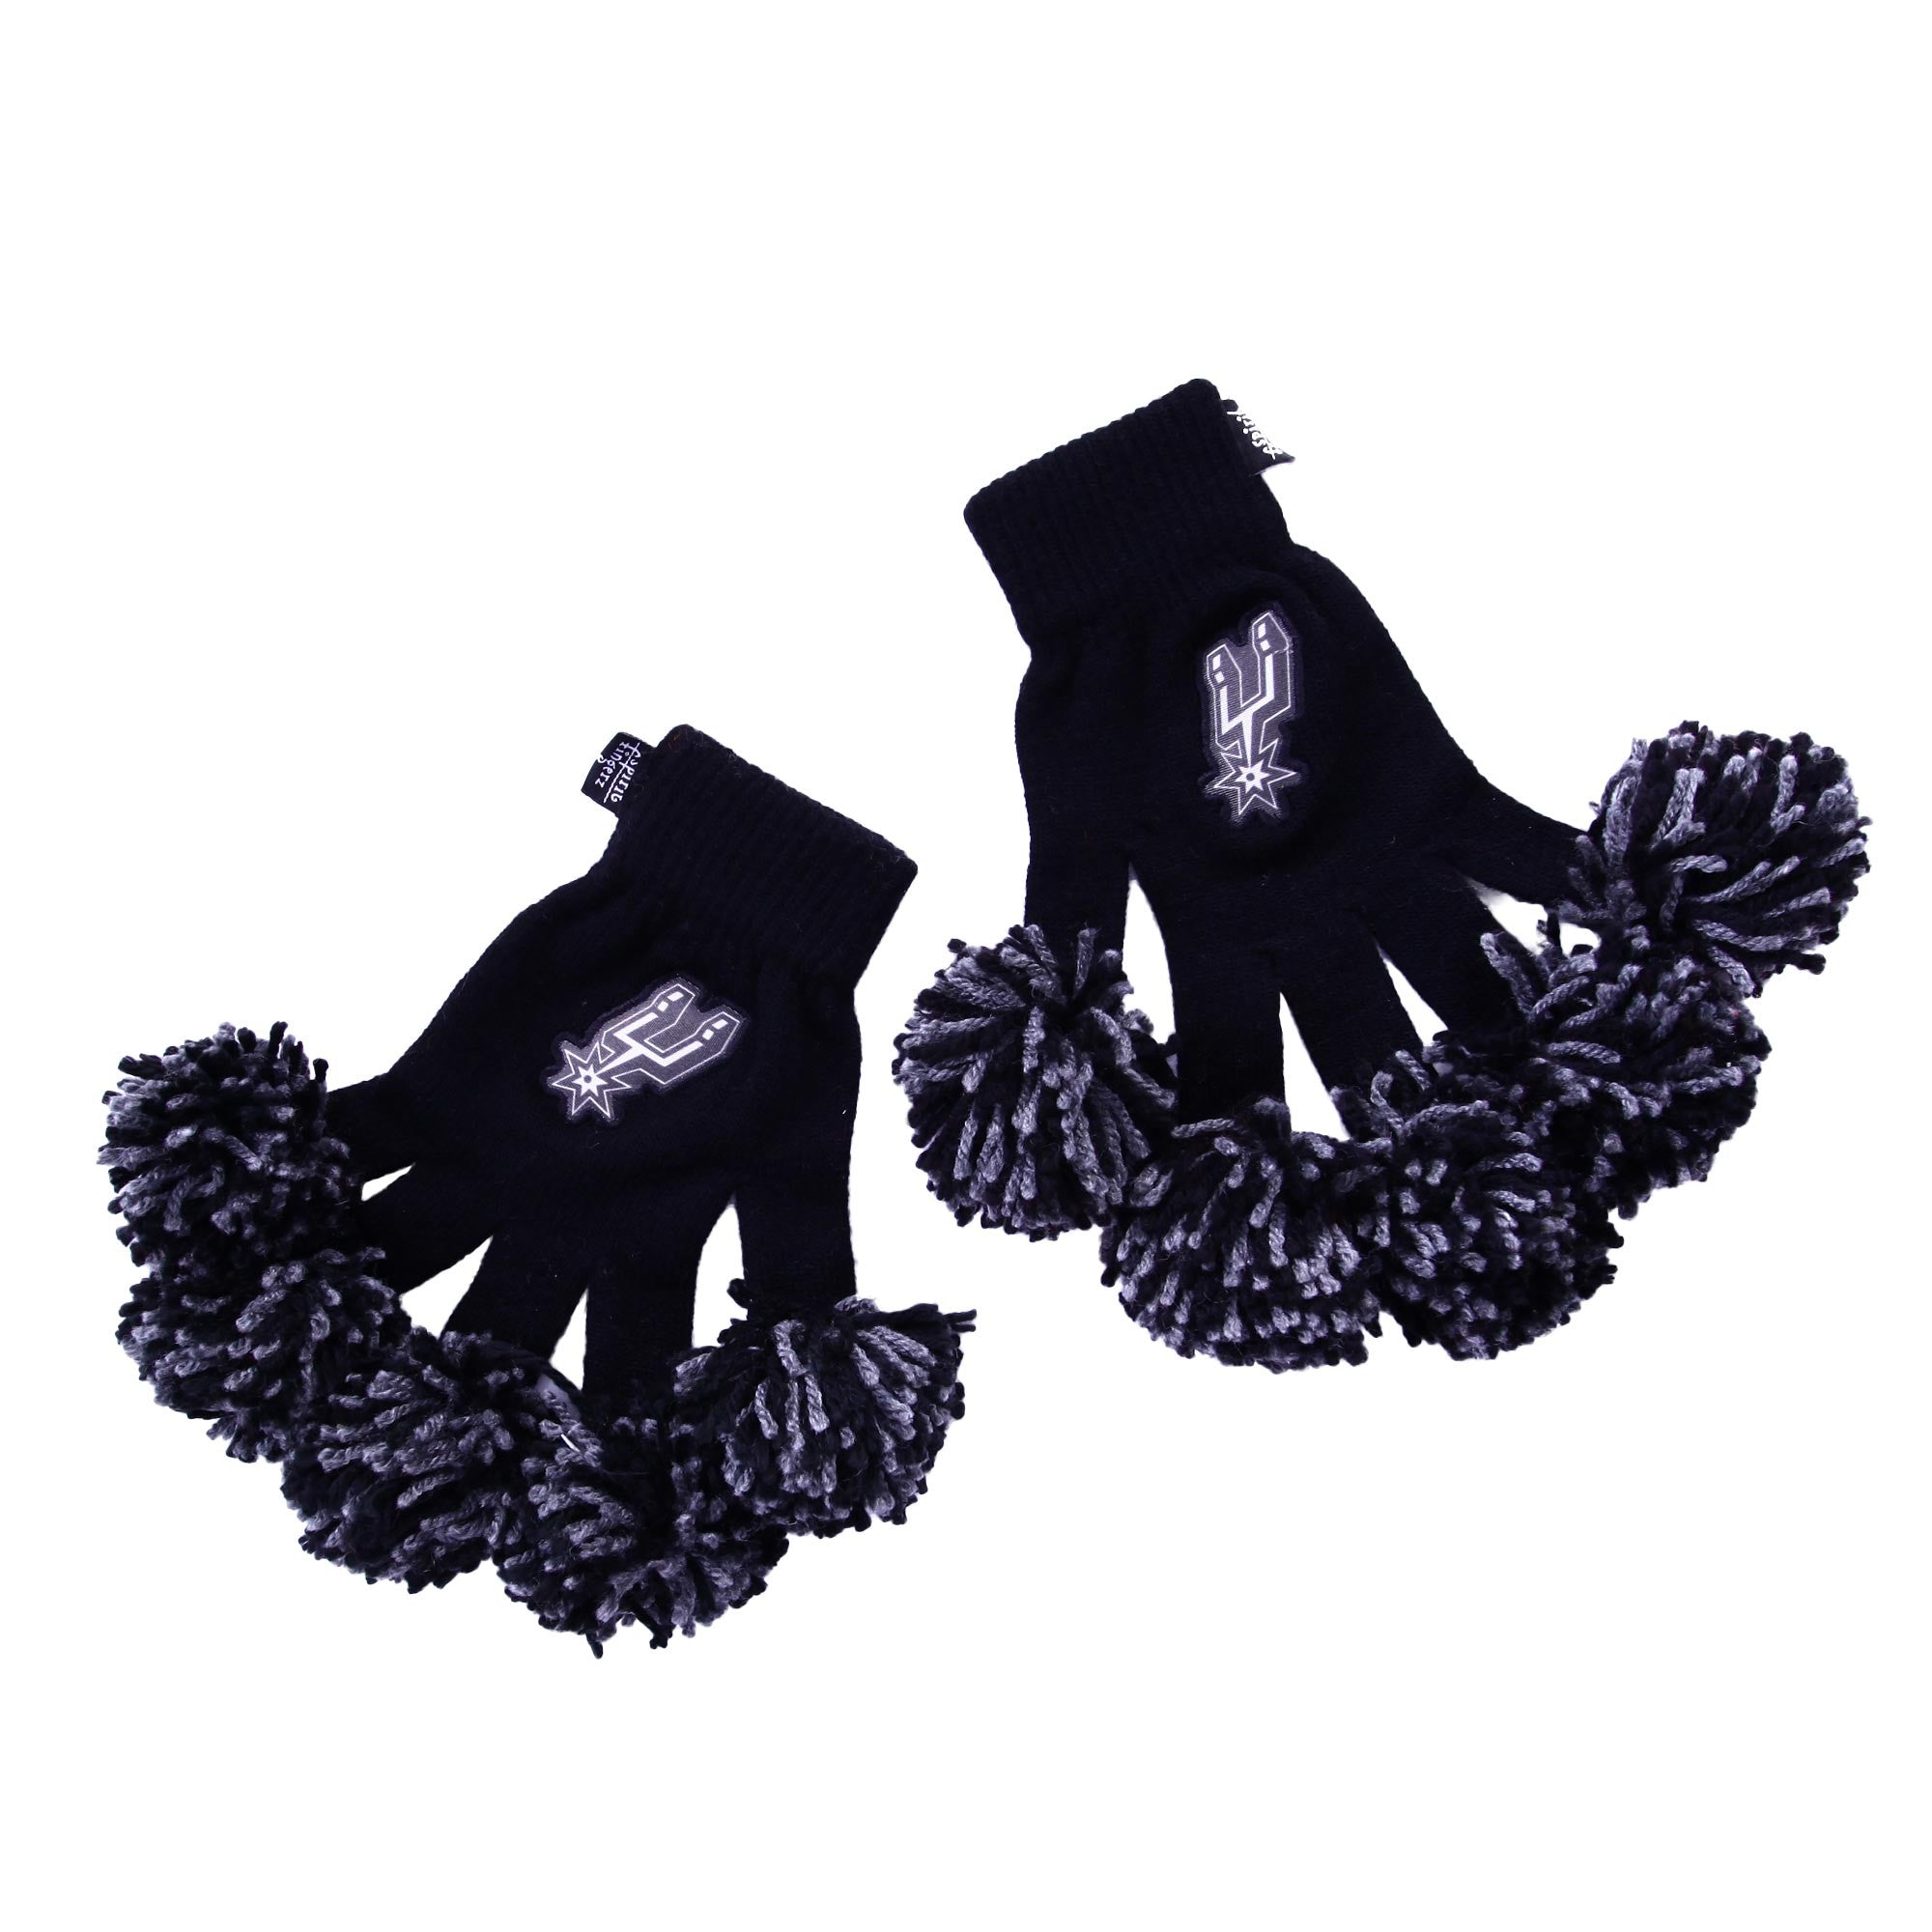 San Antonio Spurs NBA Spirit Fingerz Cheerleading Pom-Pom Gloves